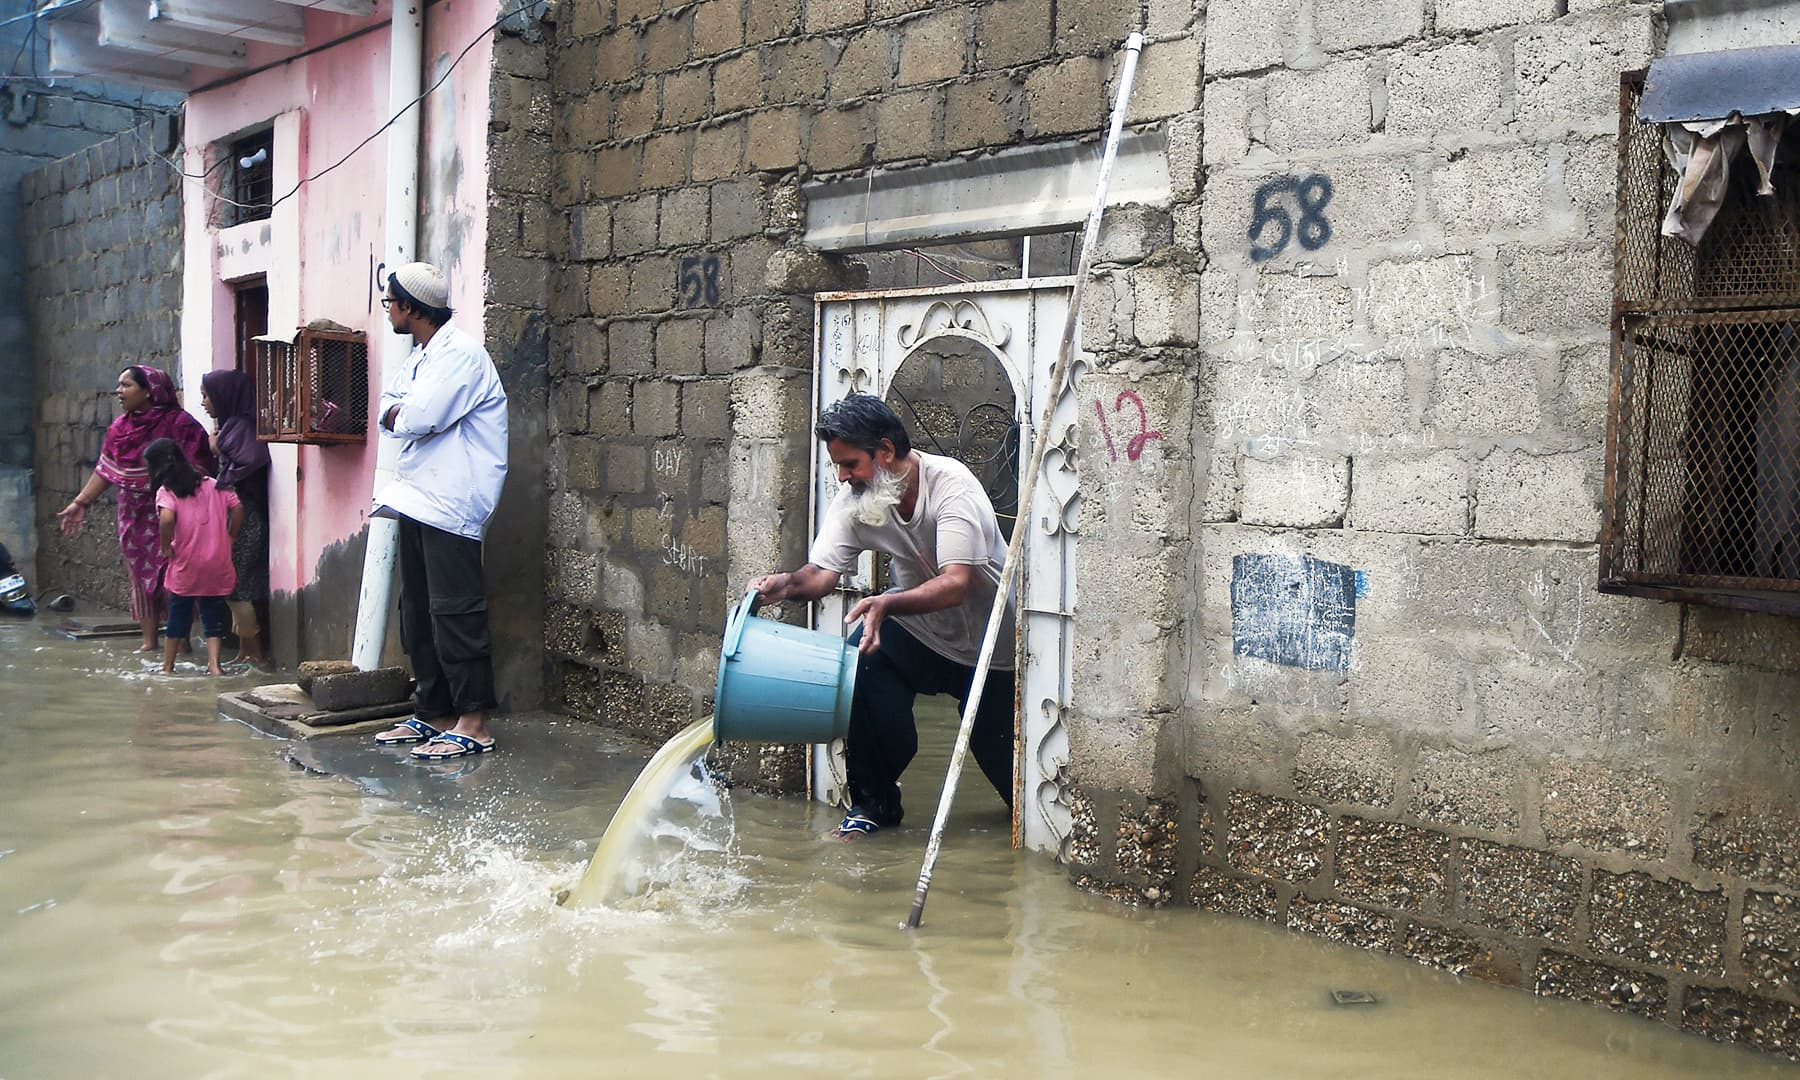 A resident removes rains water from his house in Karachi on Tuesday. — AFP